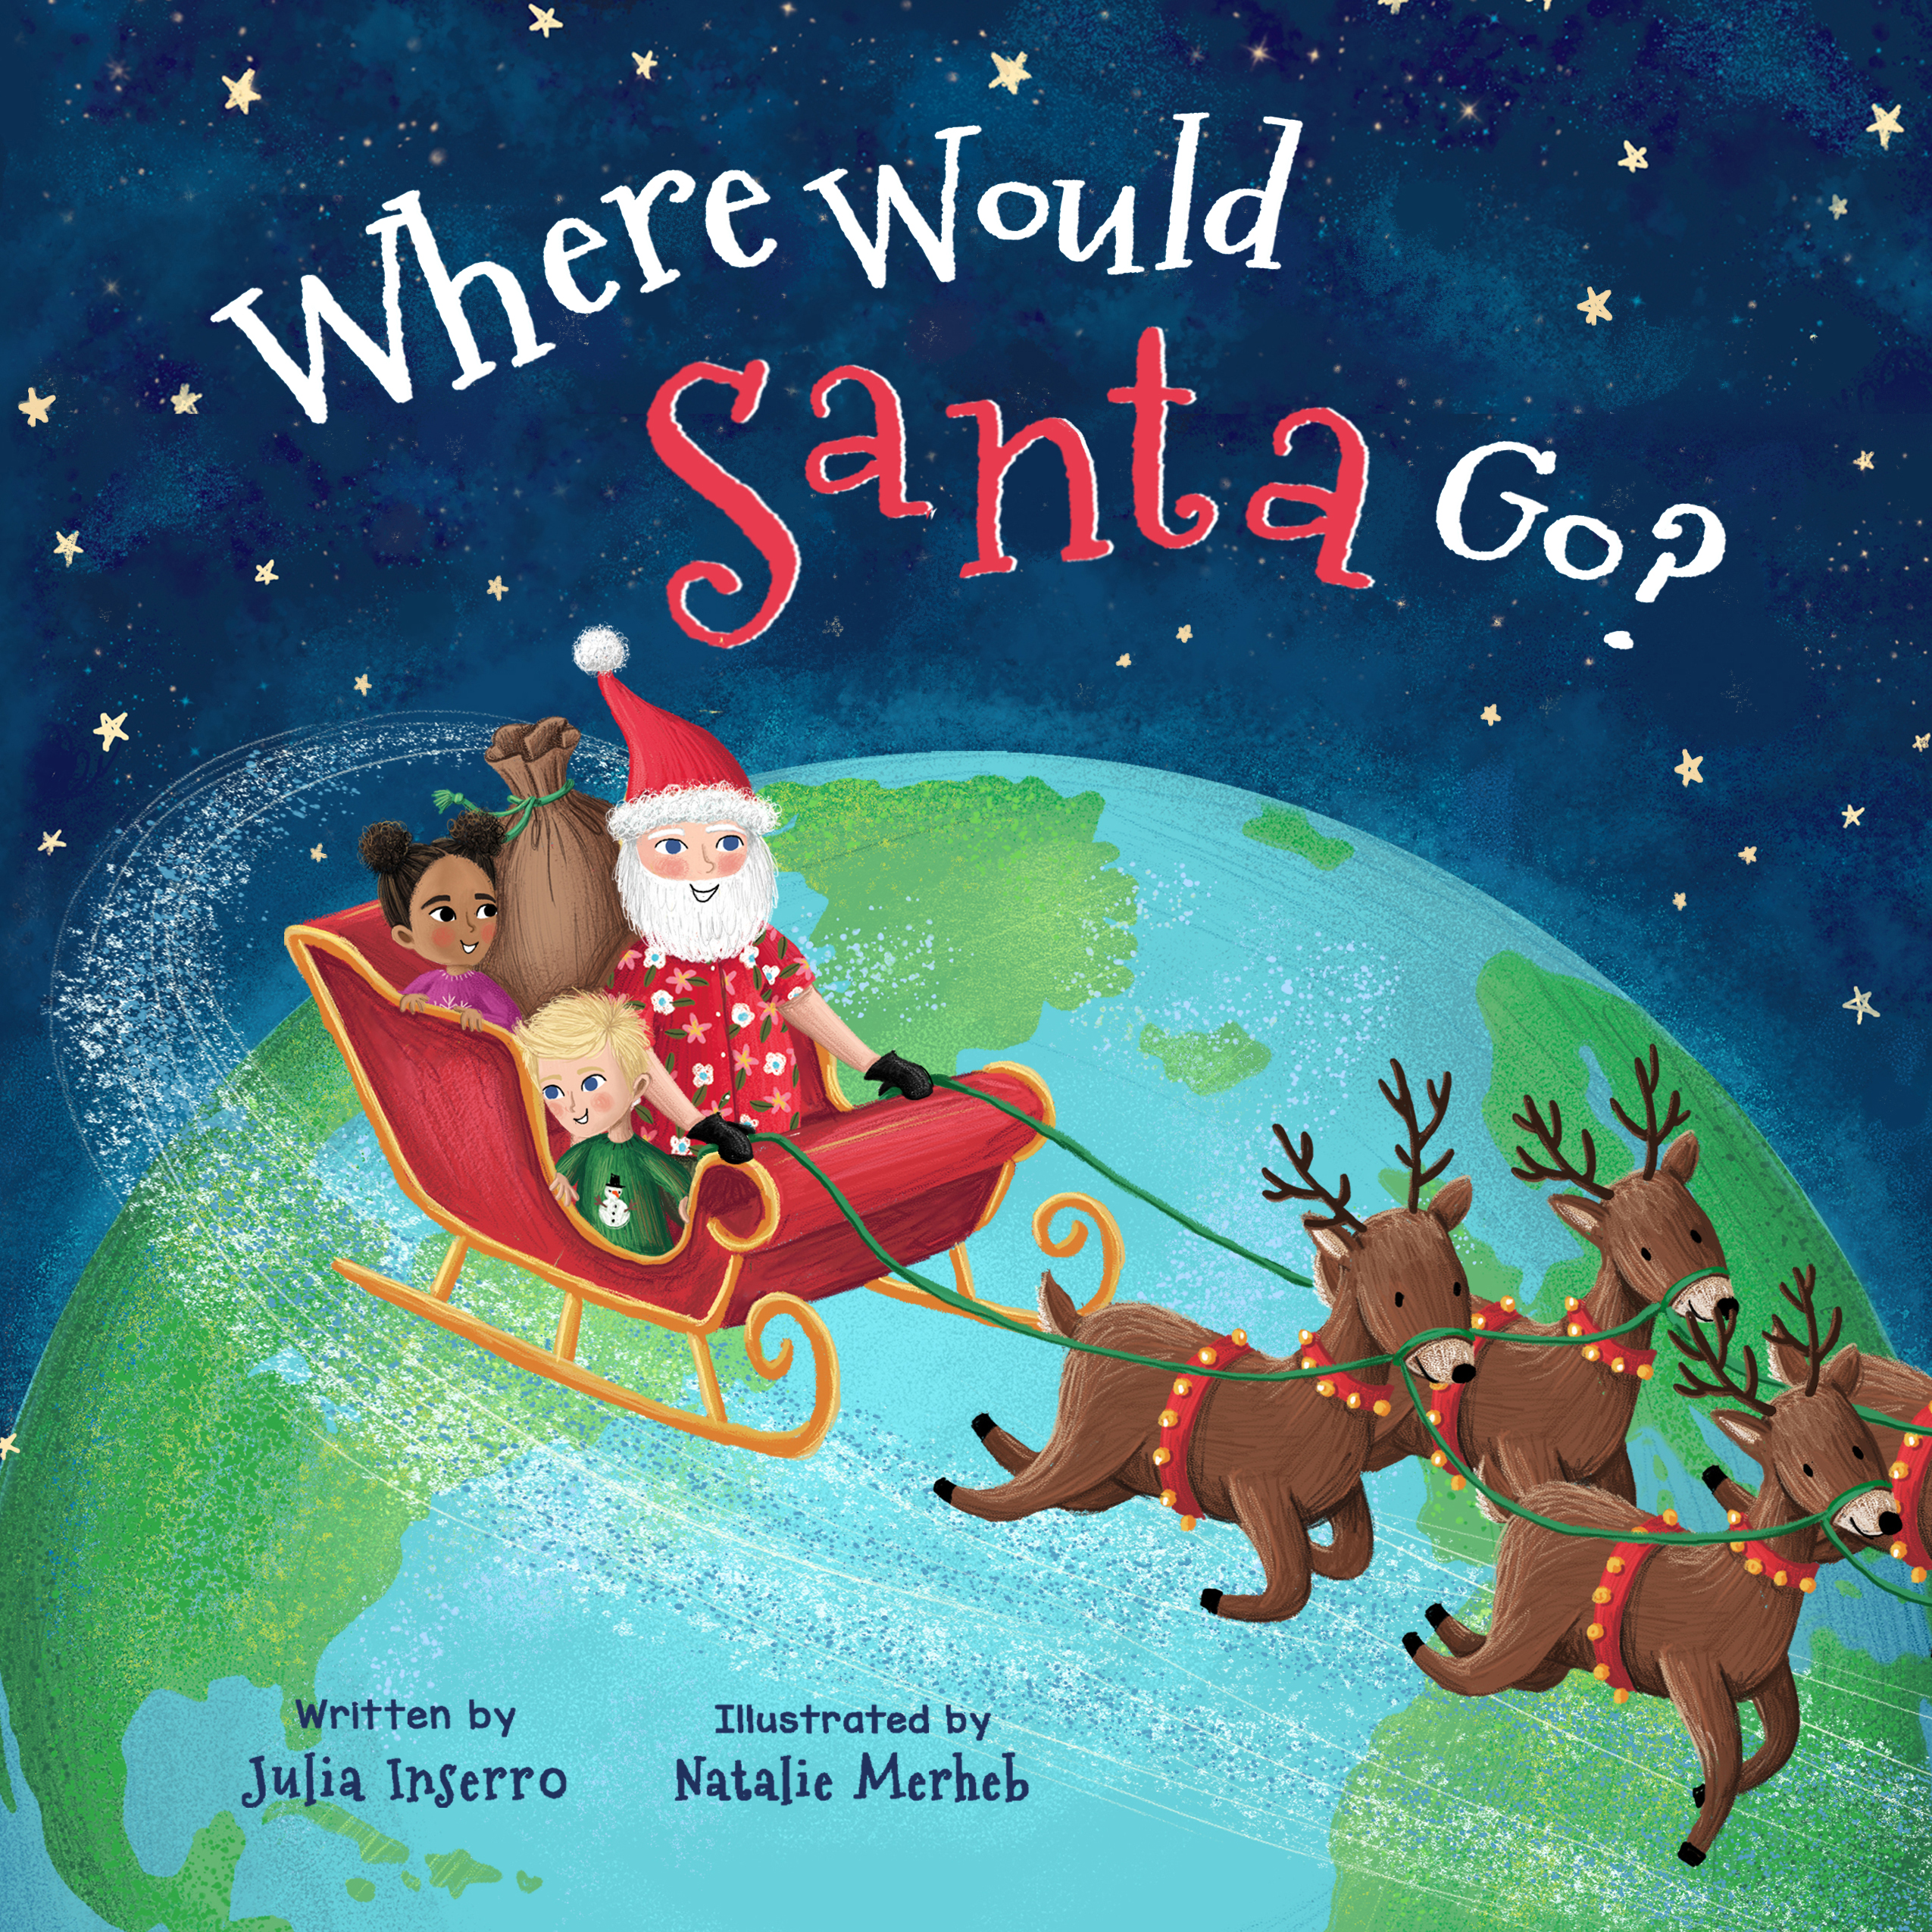 Children's Book Review: Where Would Santa Go?